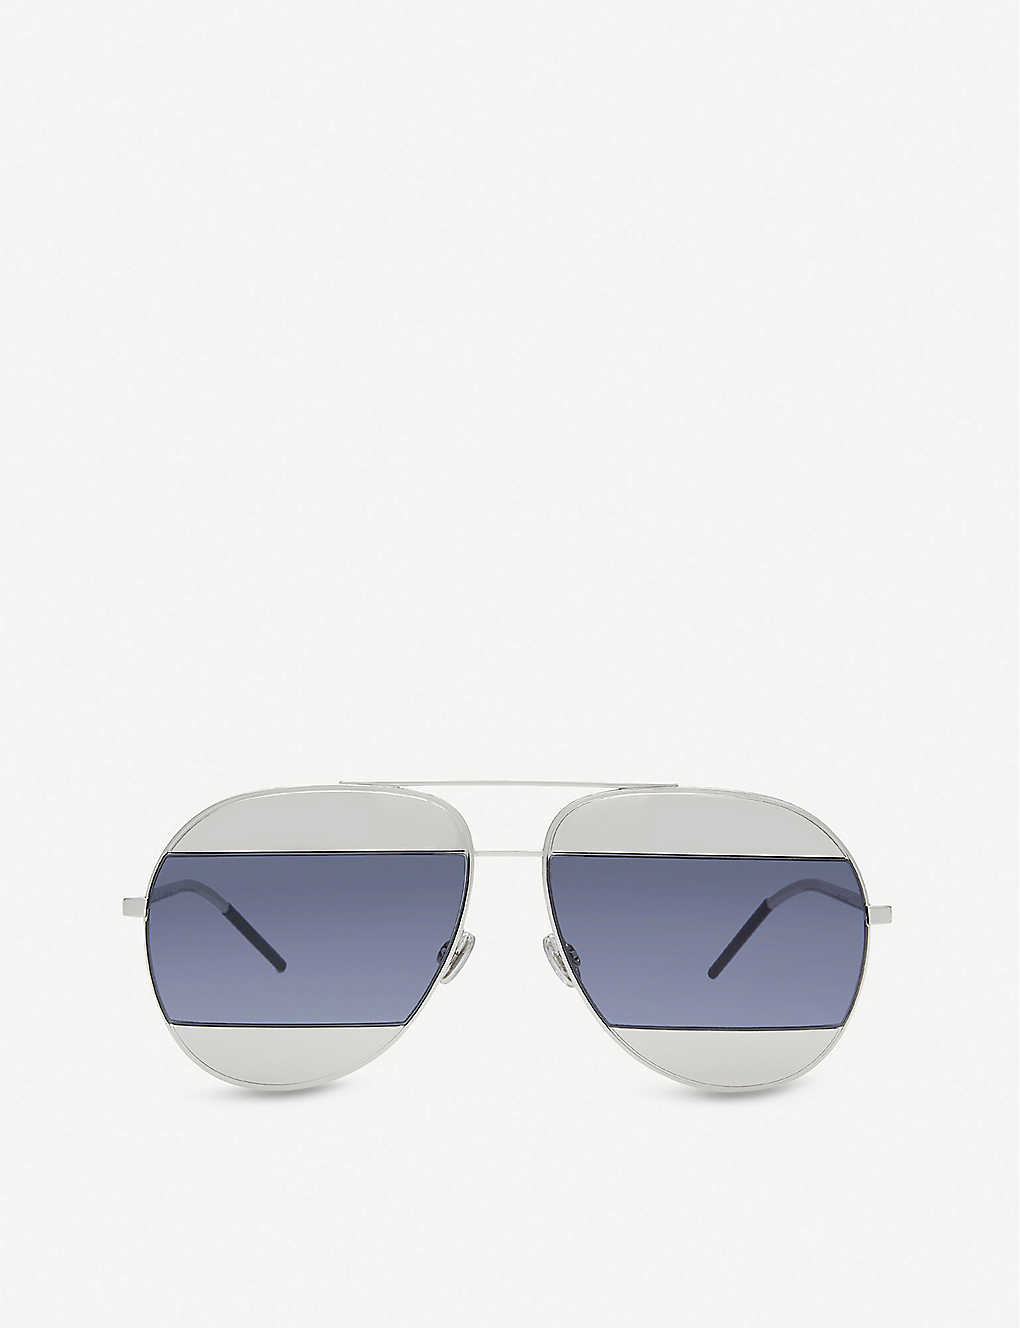 565d286fb7 DIOR - Split aviator sunglasses